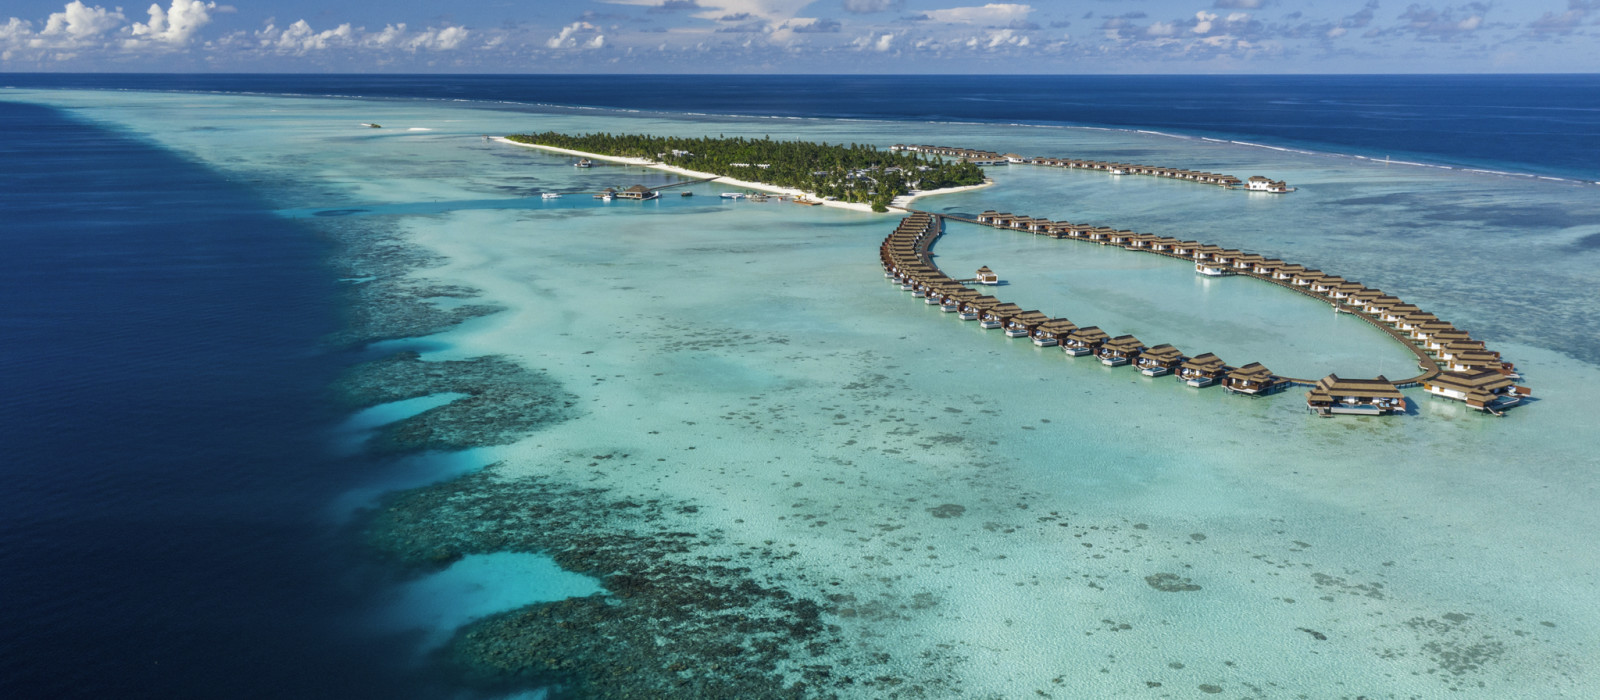 Hotel Pullman Maldives All-Inclusive Resort  Malediven